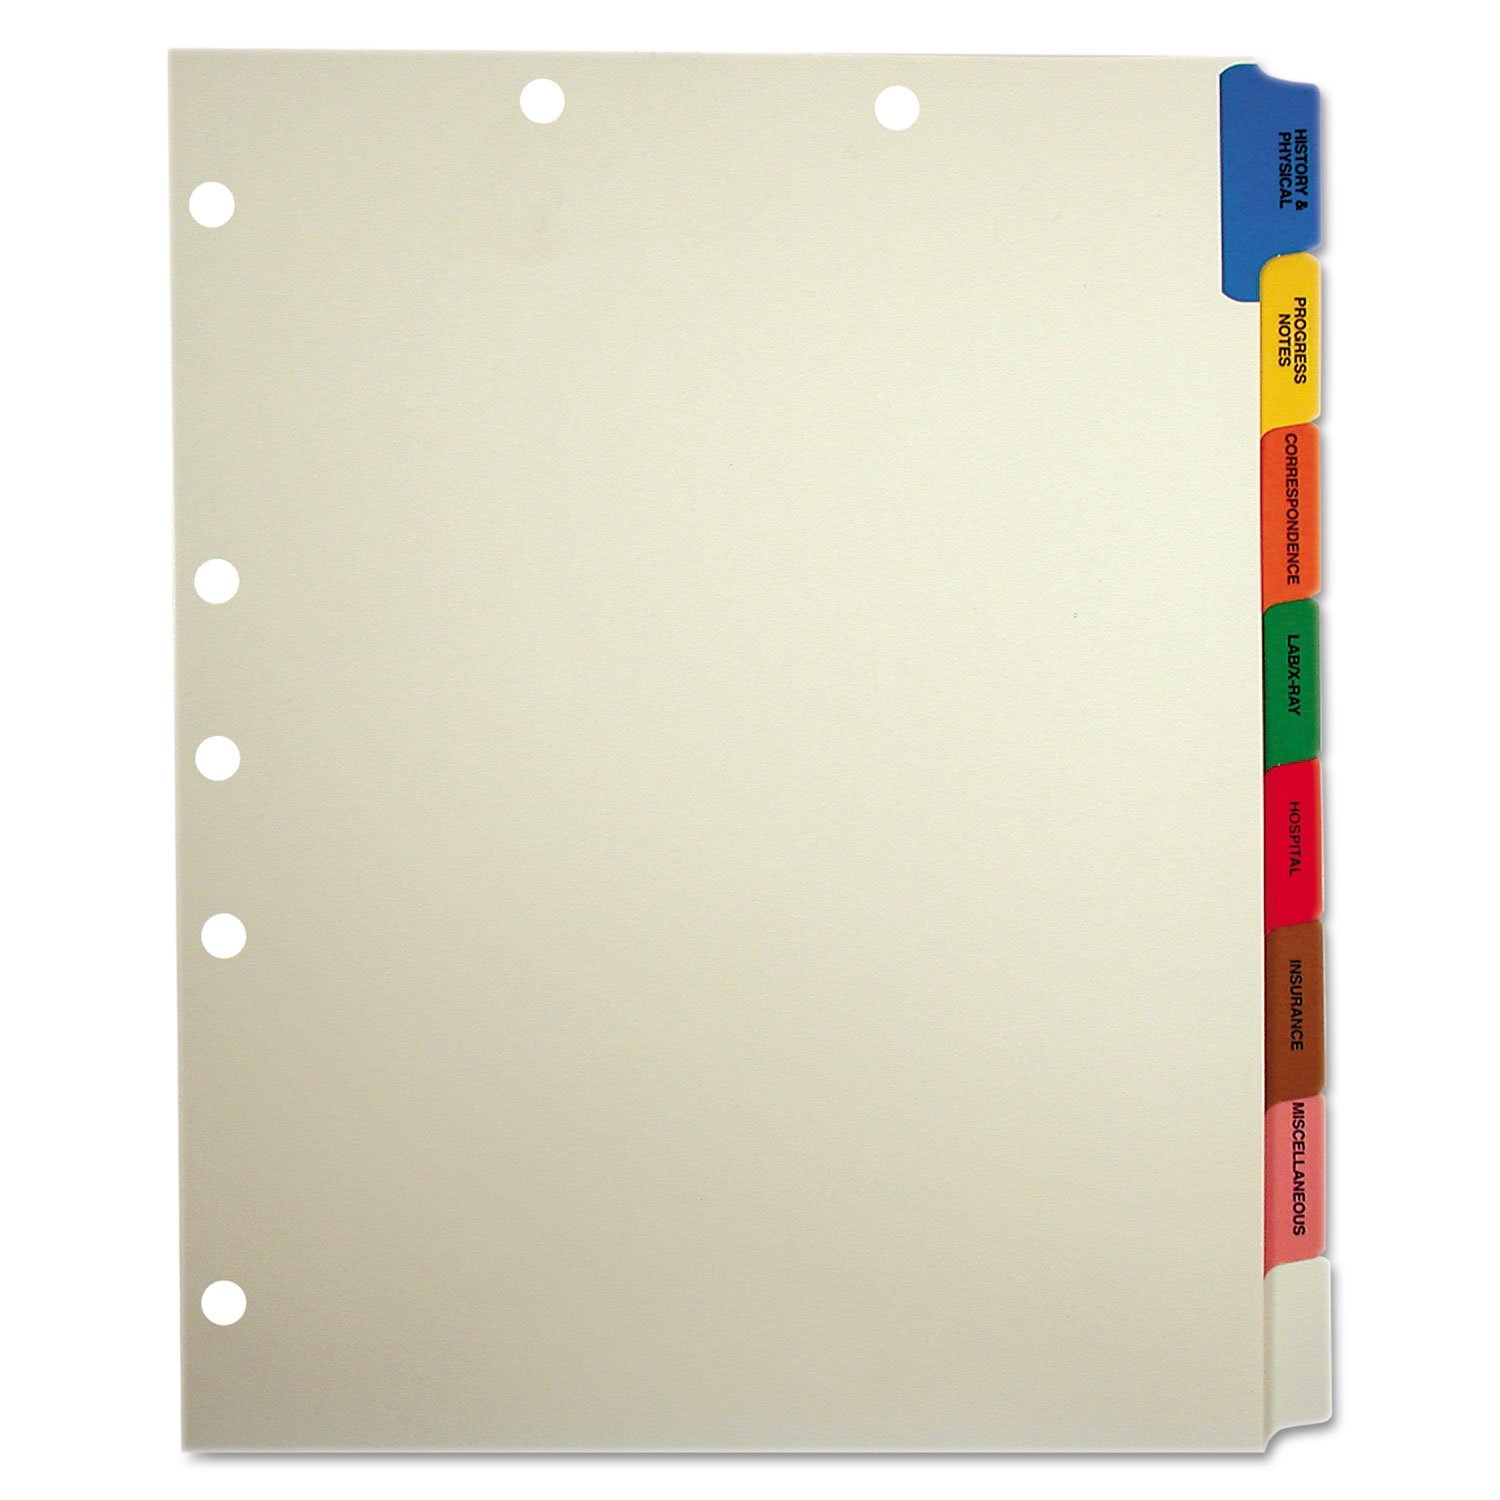 TAB54505 - Tabbies Medical Chart Divider Sets